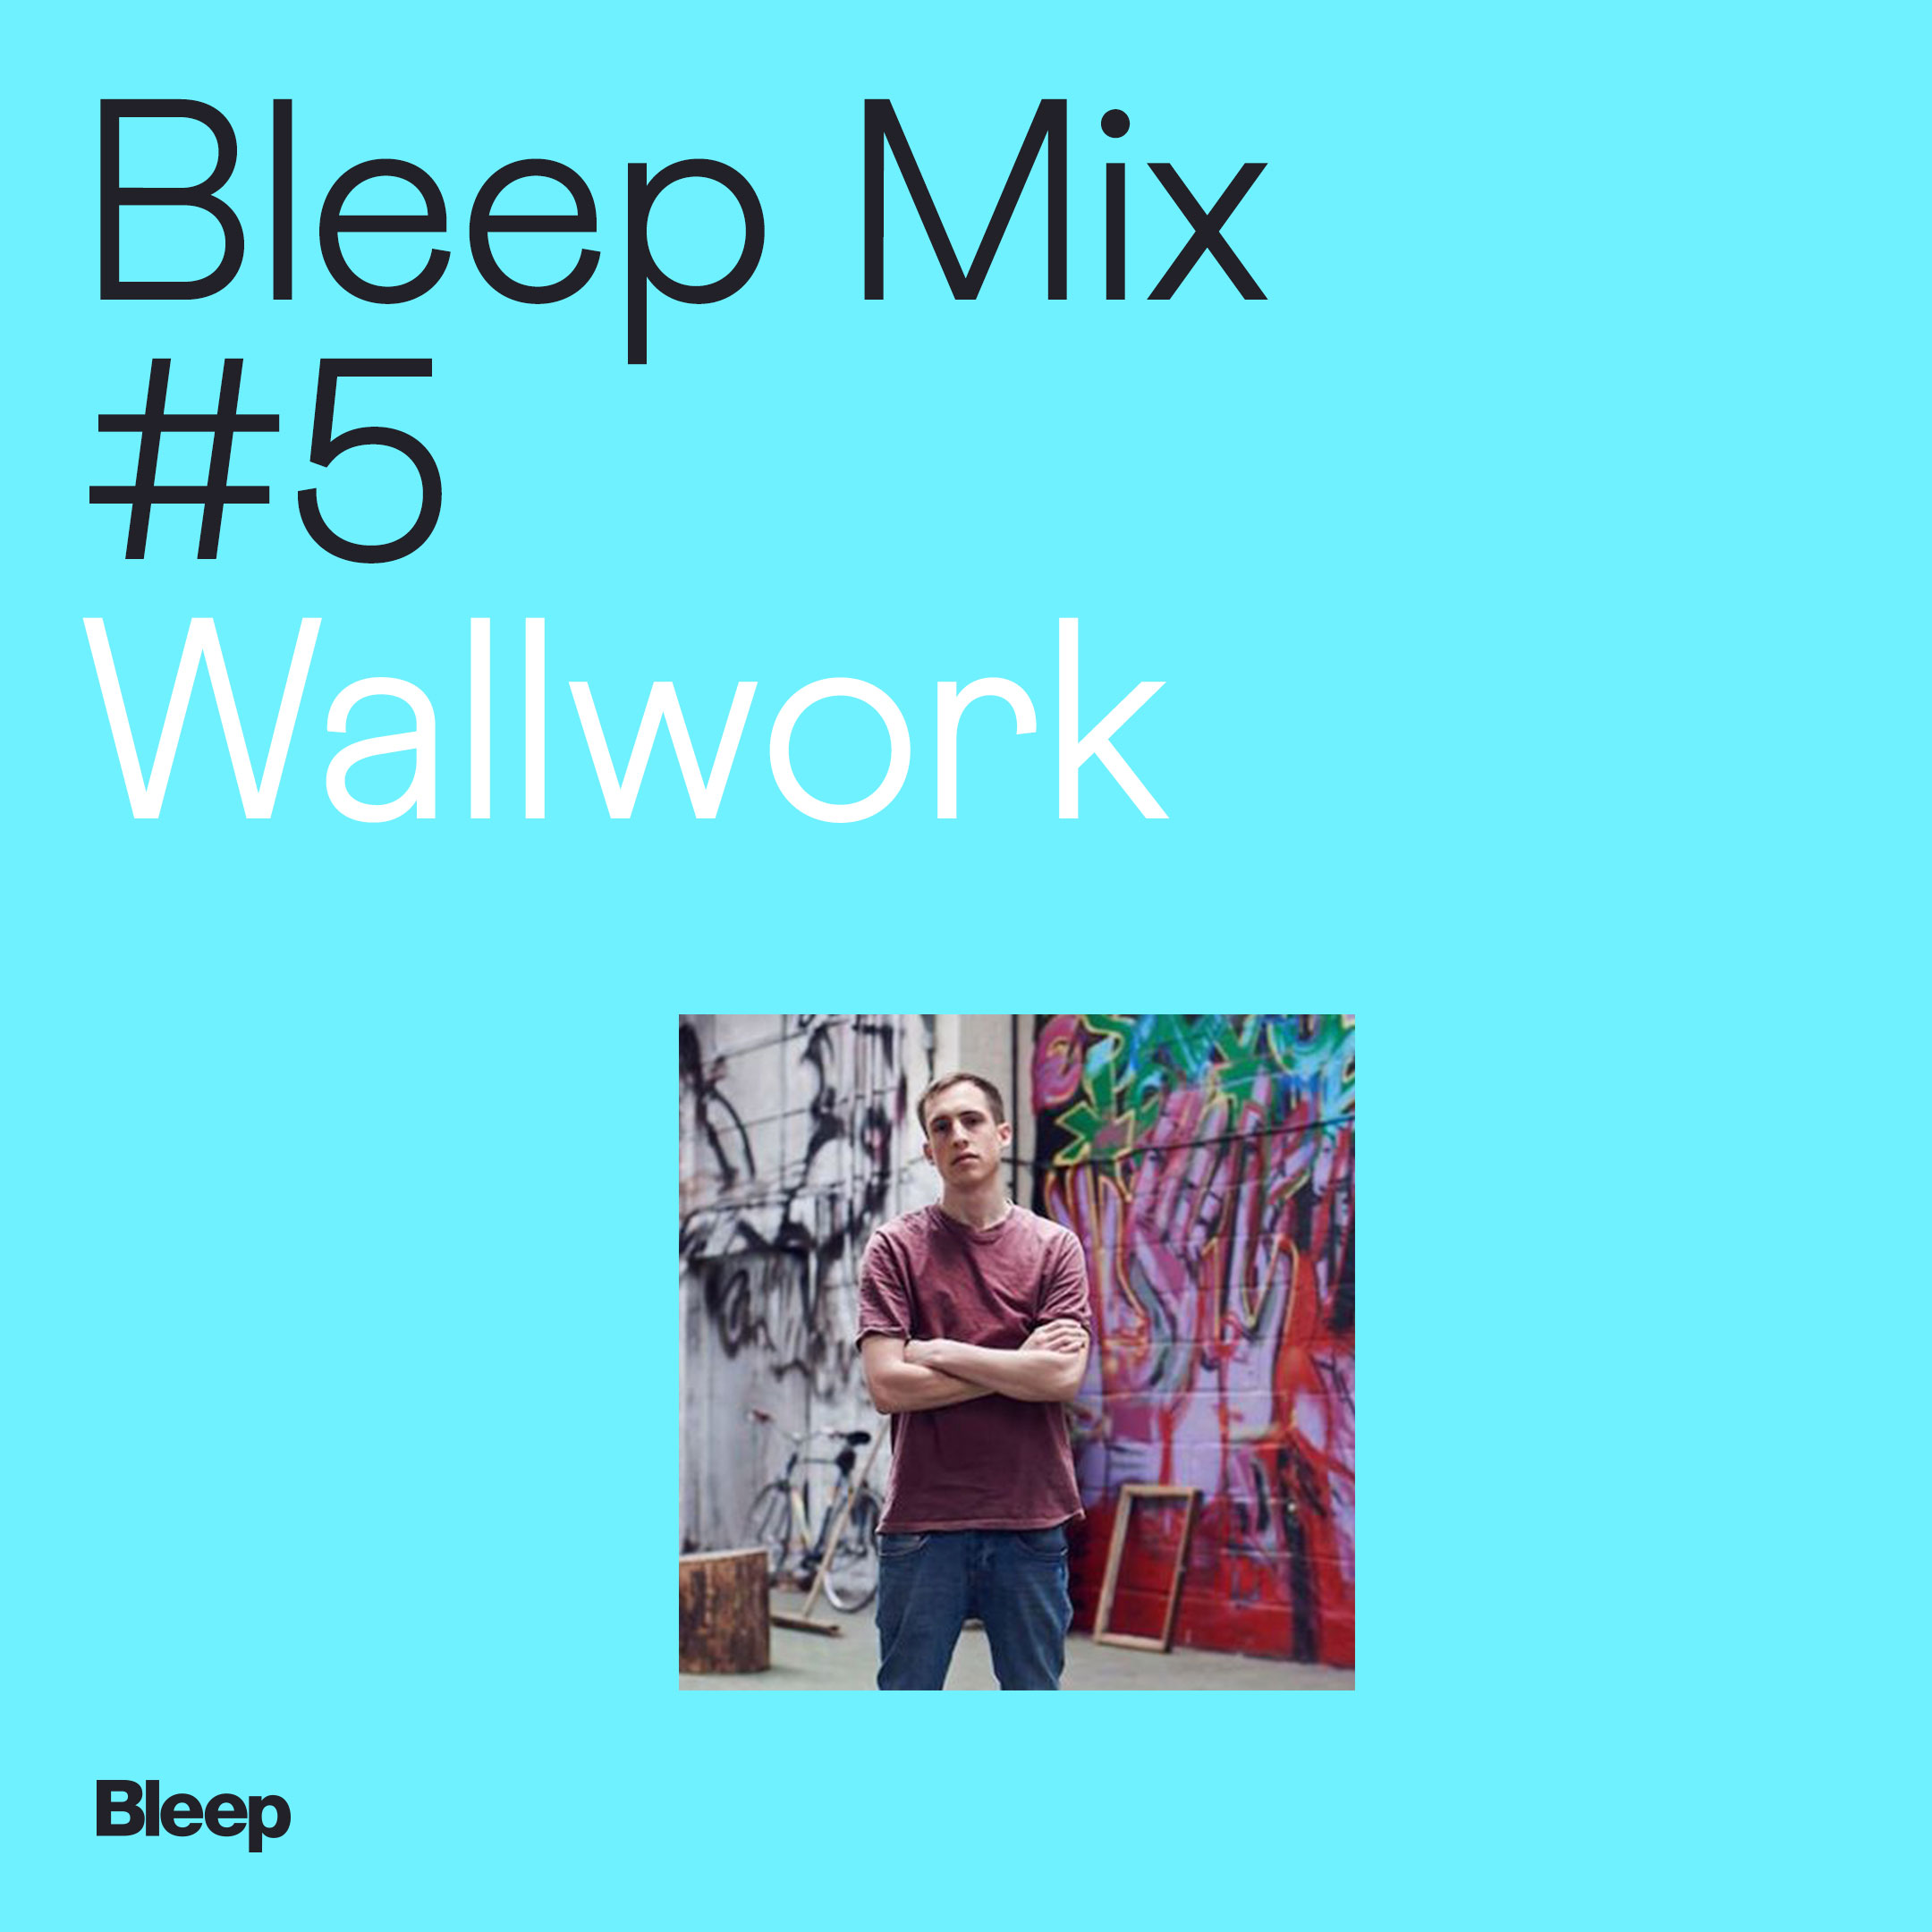 Bleep Mix #5 - Wallwork